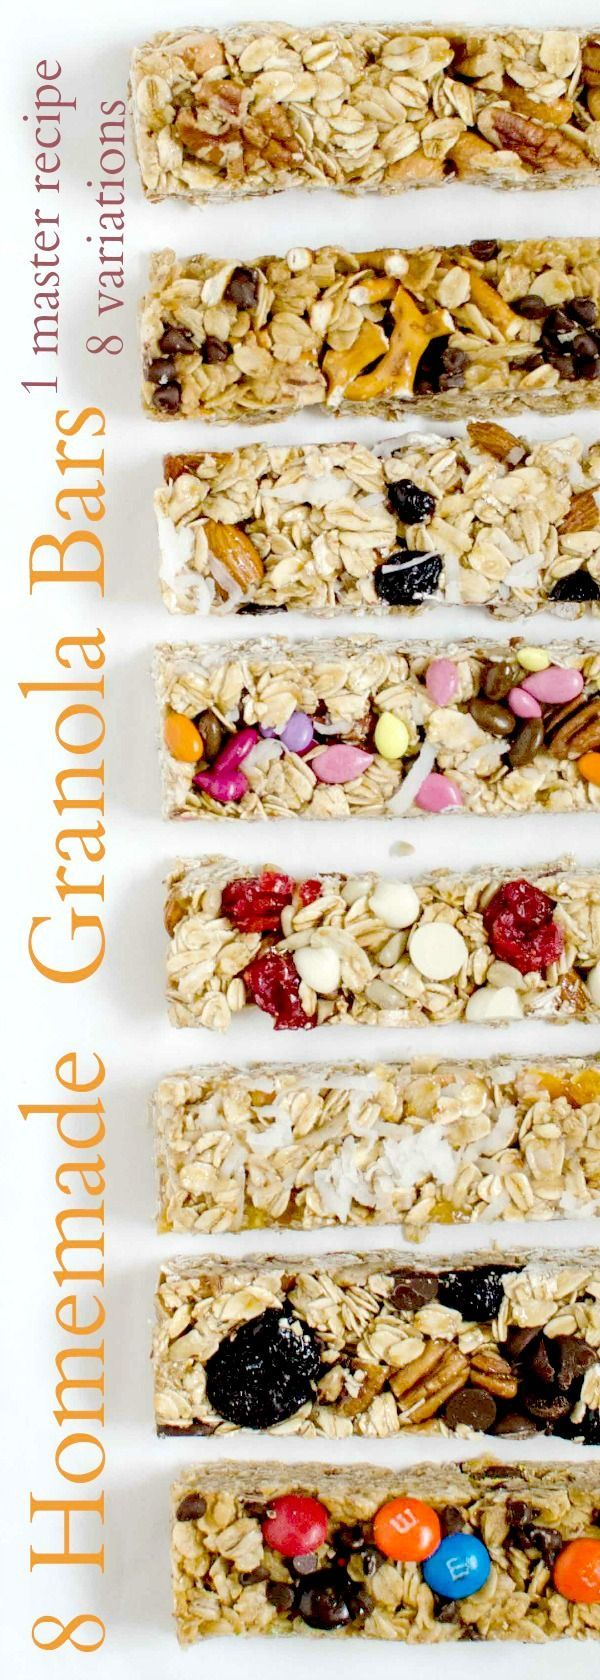 8 Easy Homemade Granola Bar Recipes You Should Try TODAY